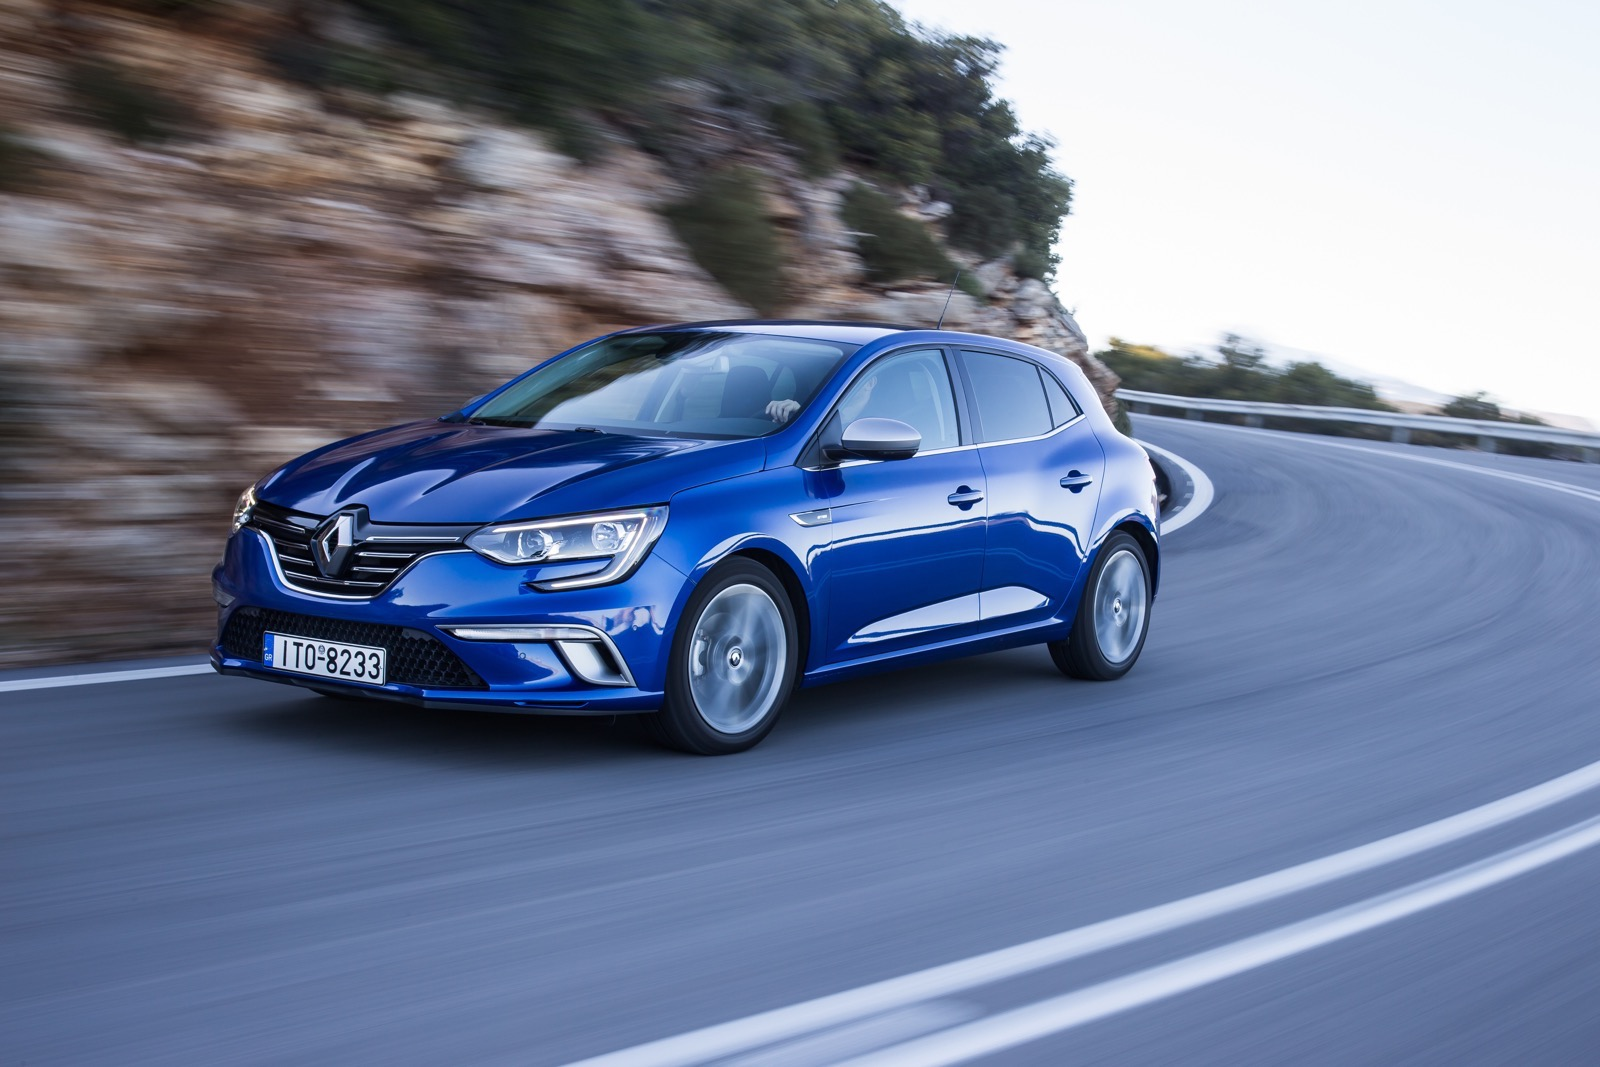 First_Drive_Renault_Megane_55